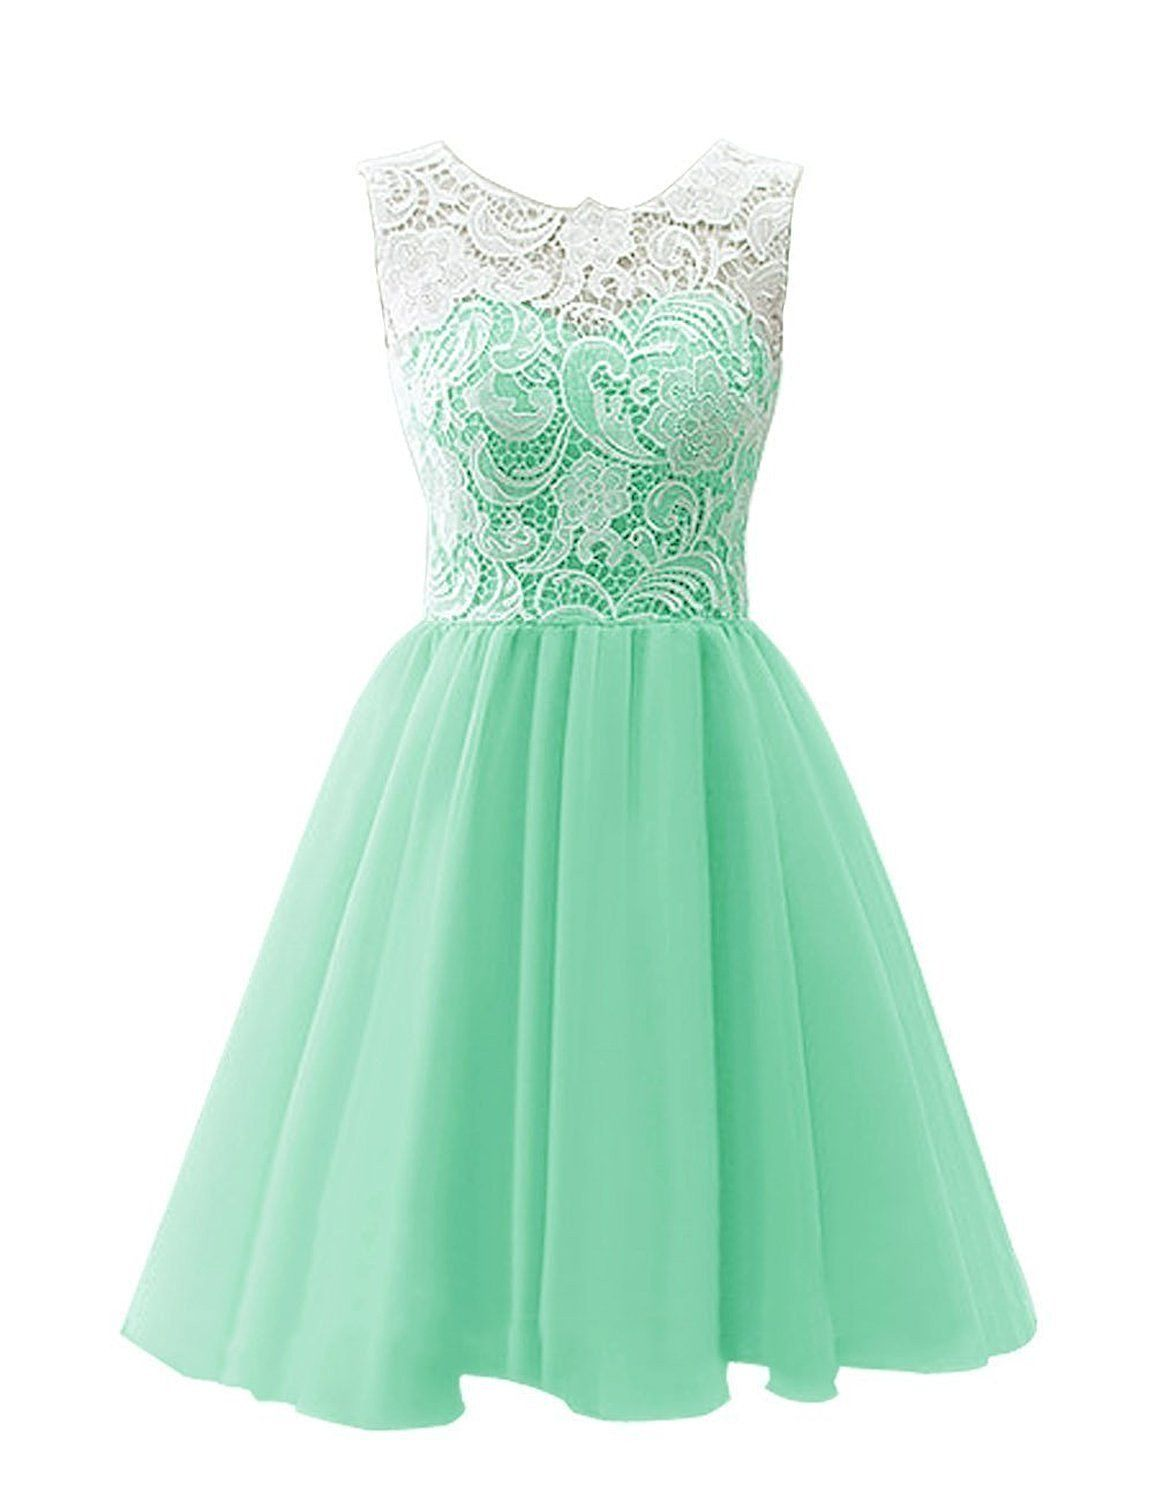 Flower girl adult ball gown lace short prom dress dress in